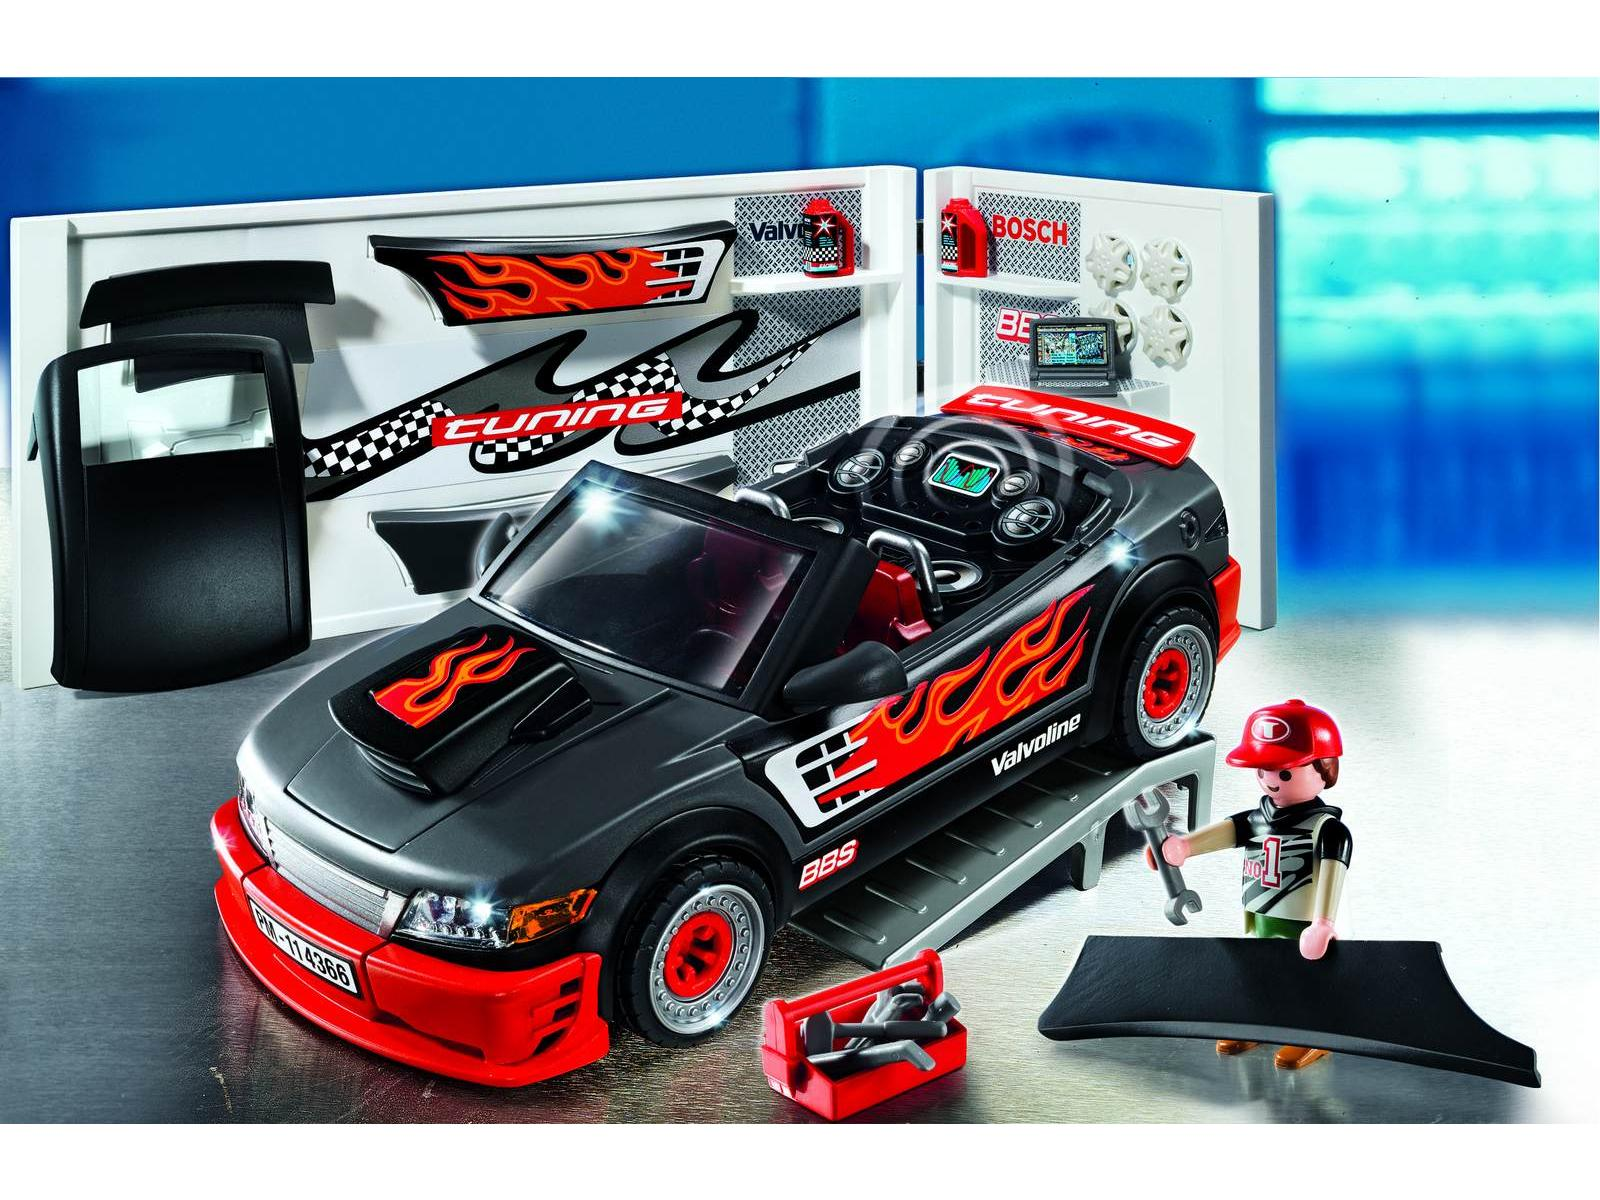 PLAYMOBIL 4366 Voiture tuning avec effets sonores